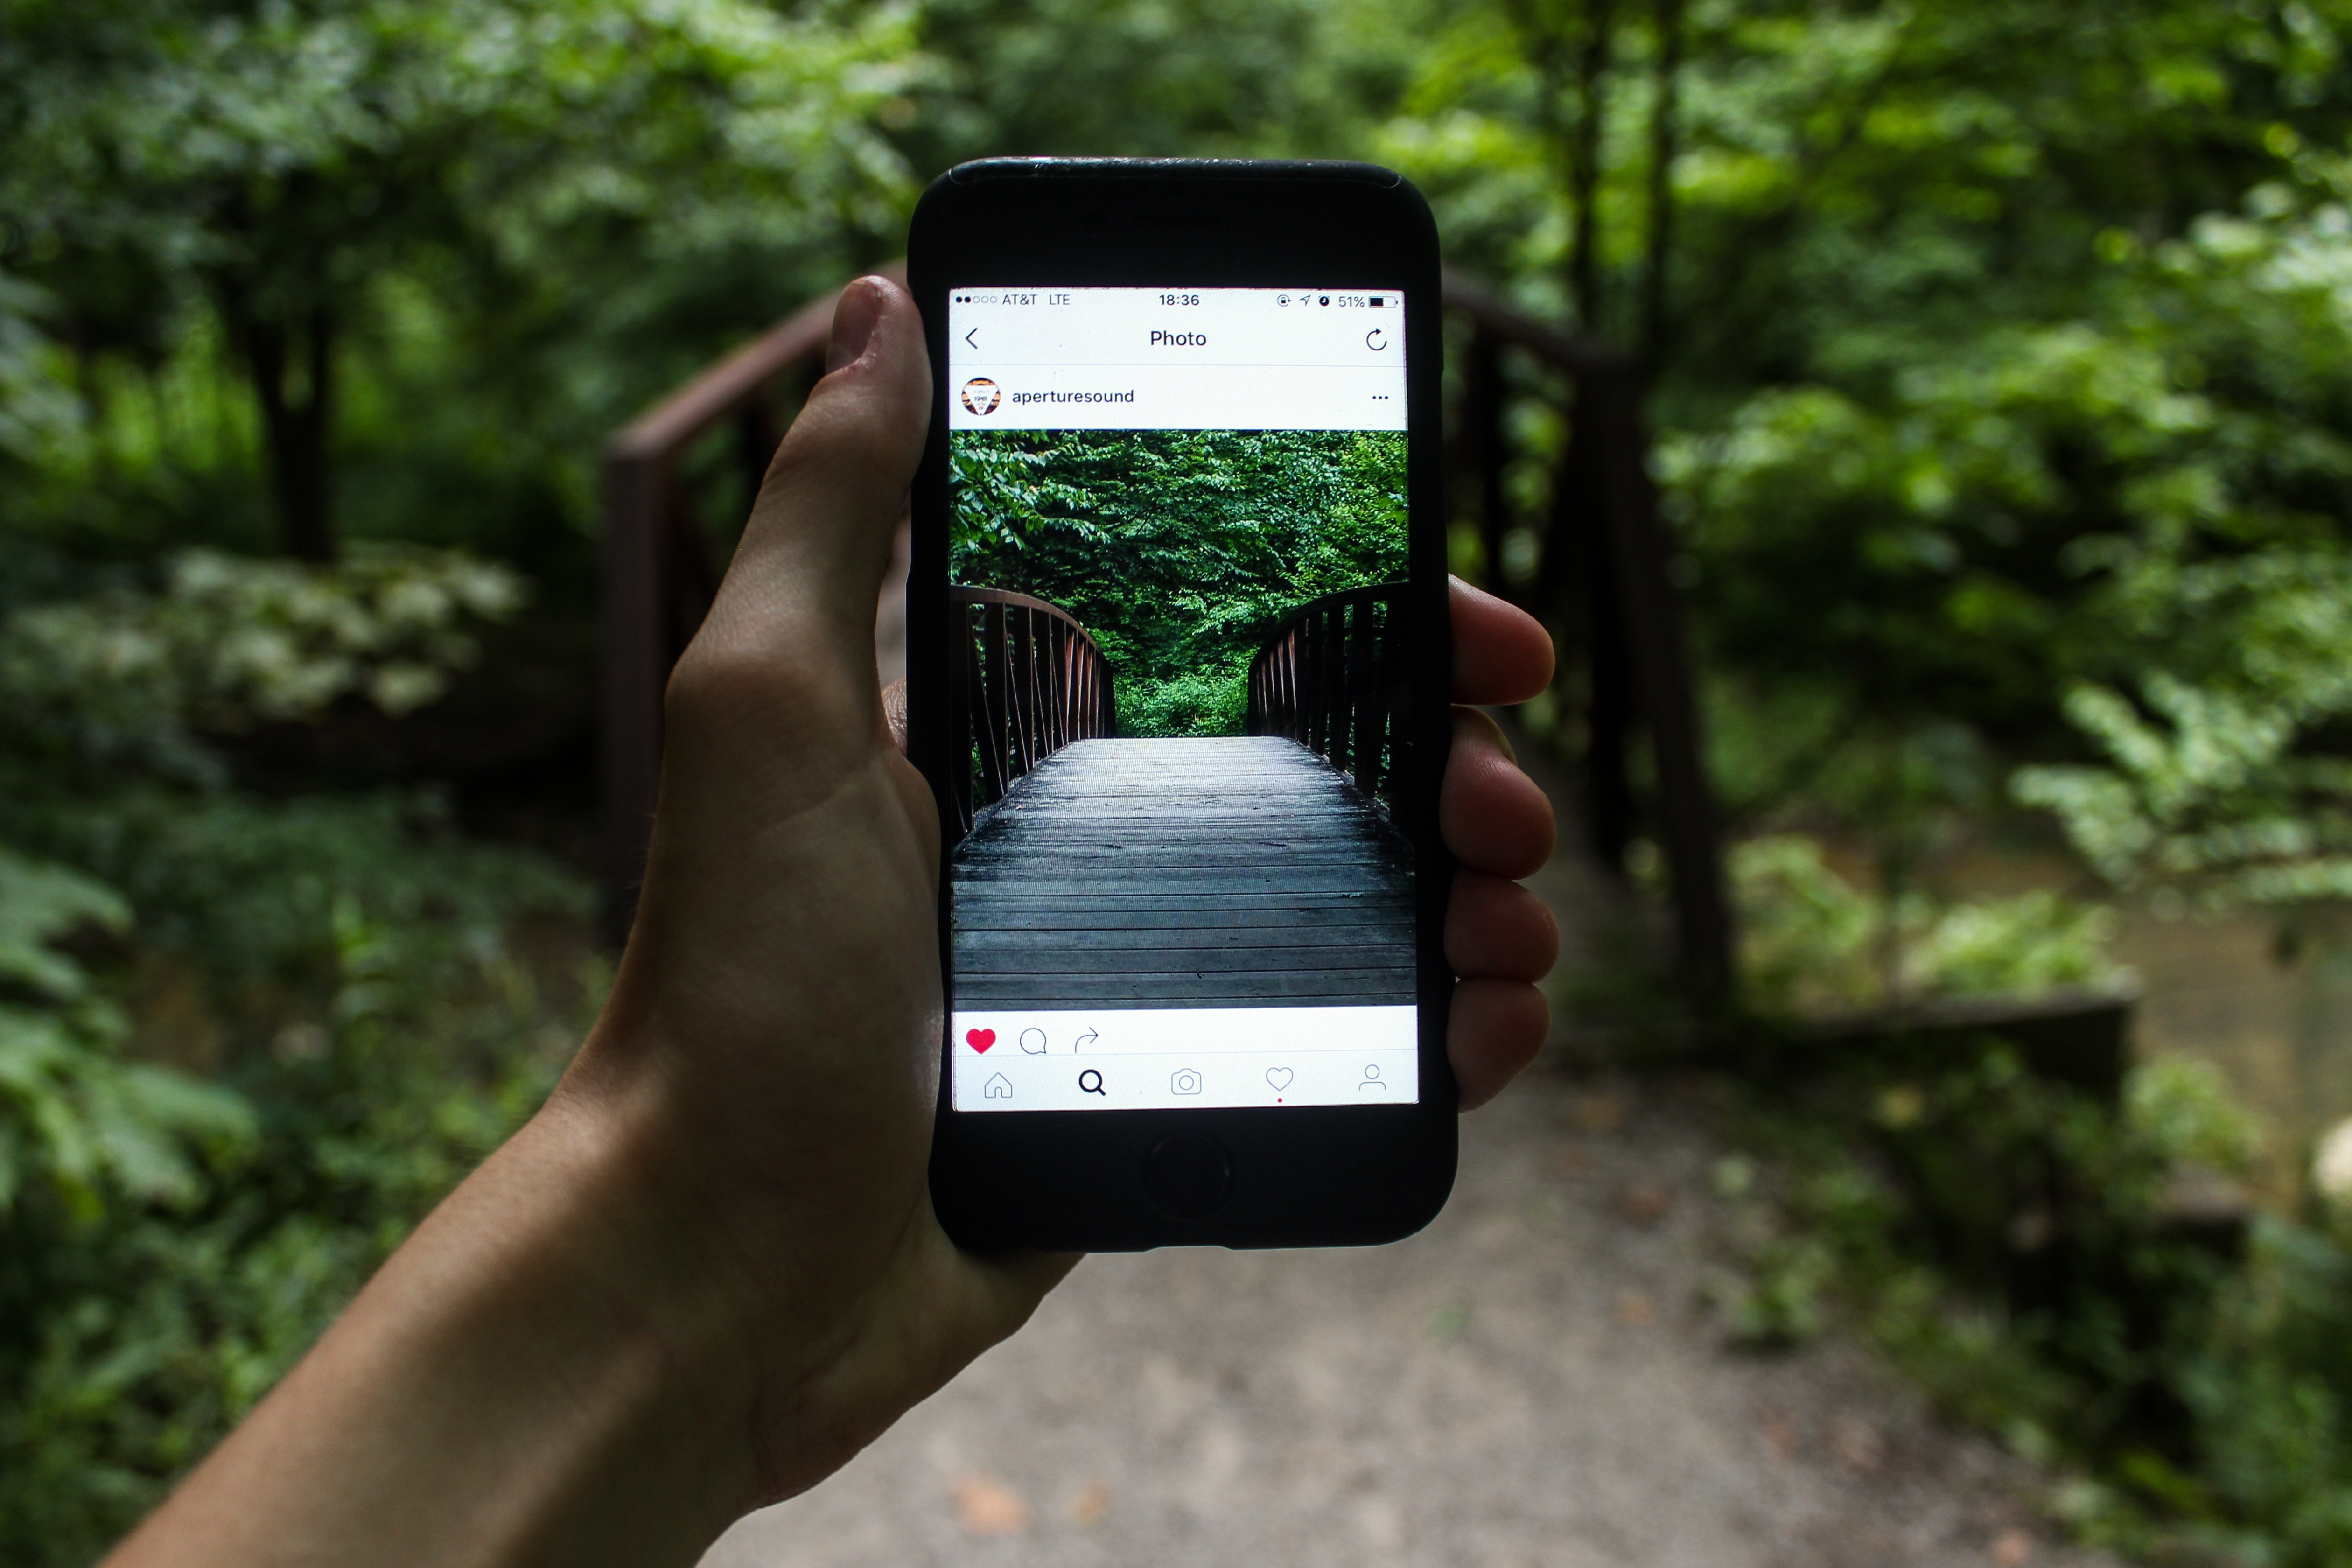 The Impact of Social Media and Its Influencers